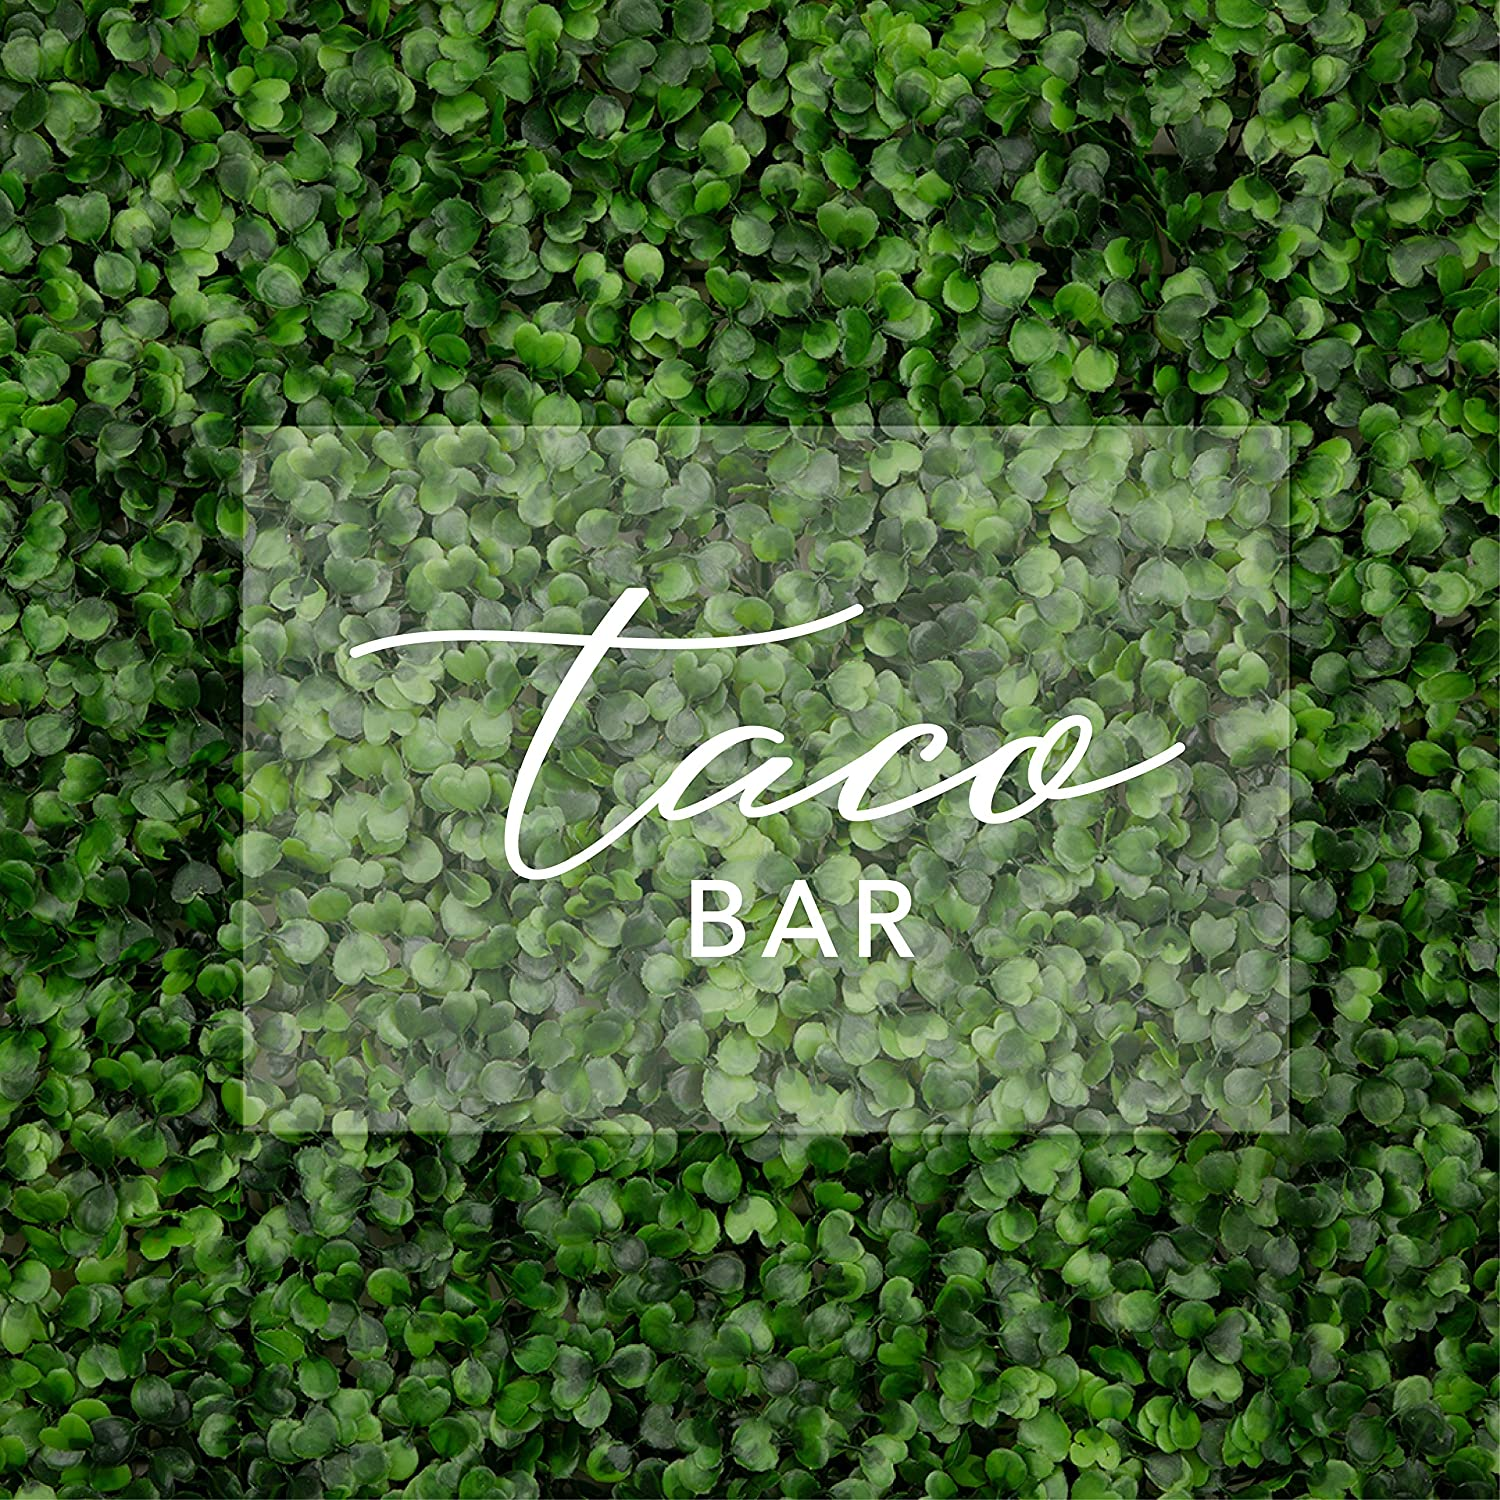 Andaz Press Taco Bar Acrylic Sign, 7.5 x 11 Inch, Stand Included, Signage for Wedding, Bridal Shower, Bachelorette, Engagement, Birthday, Baby Shower, Fiesta, Cinco De Mayo Taco Food Bar Station